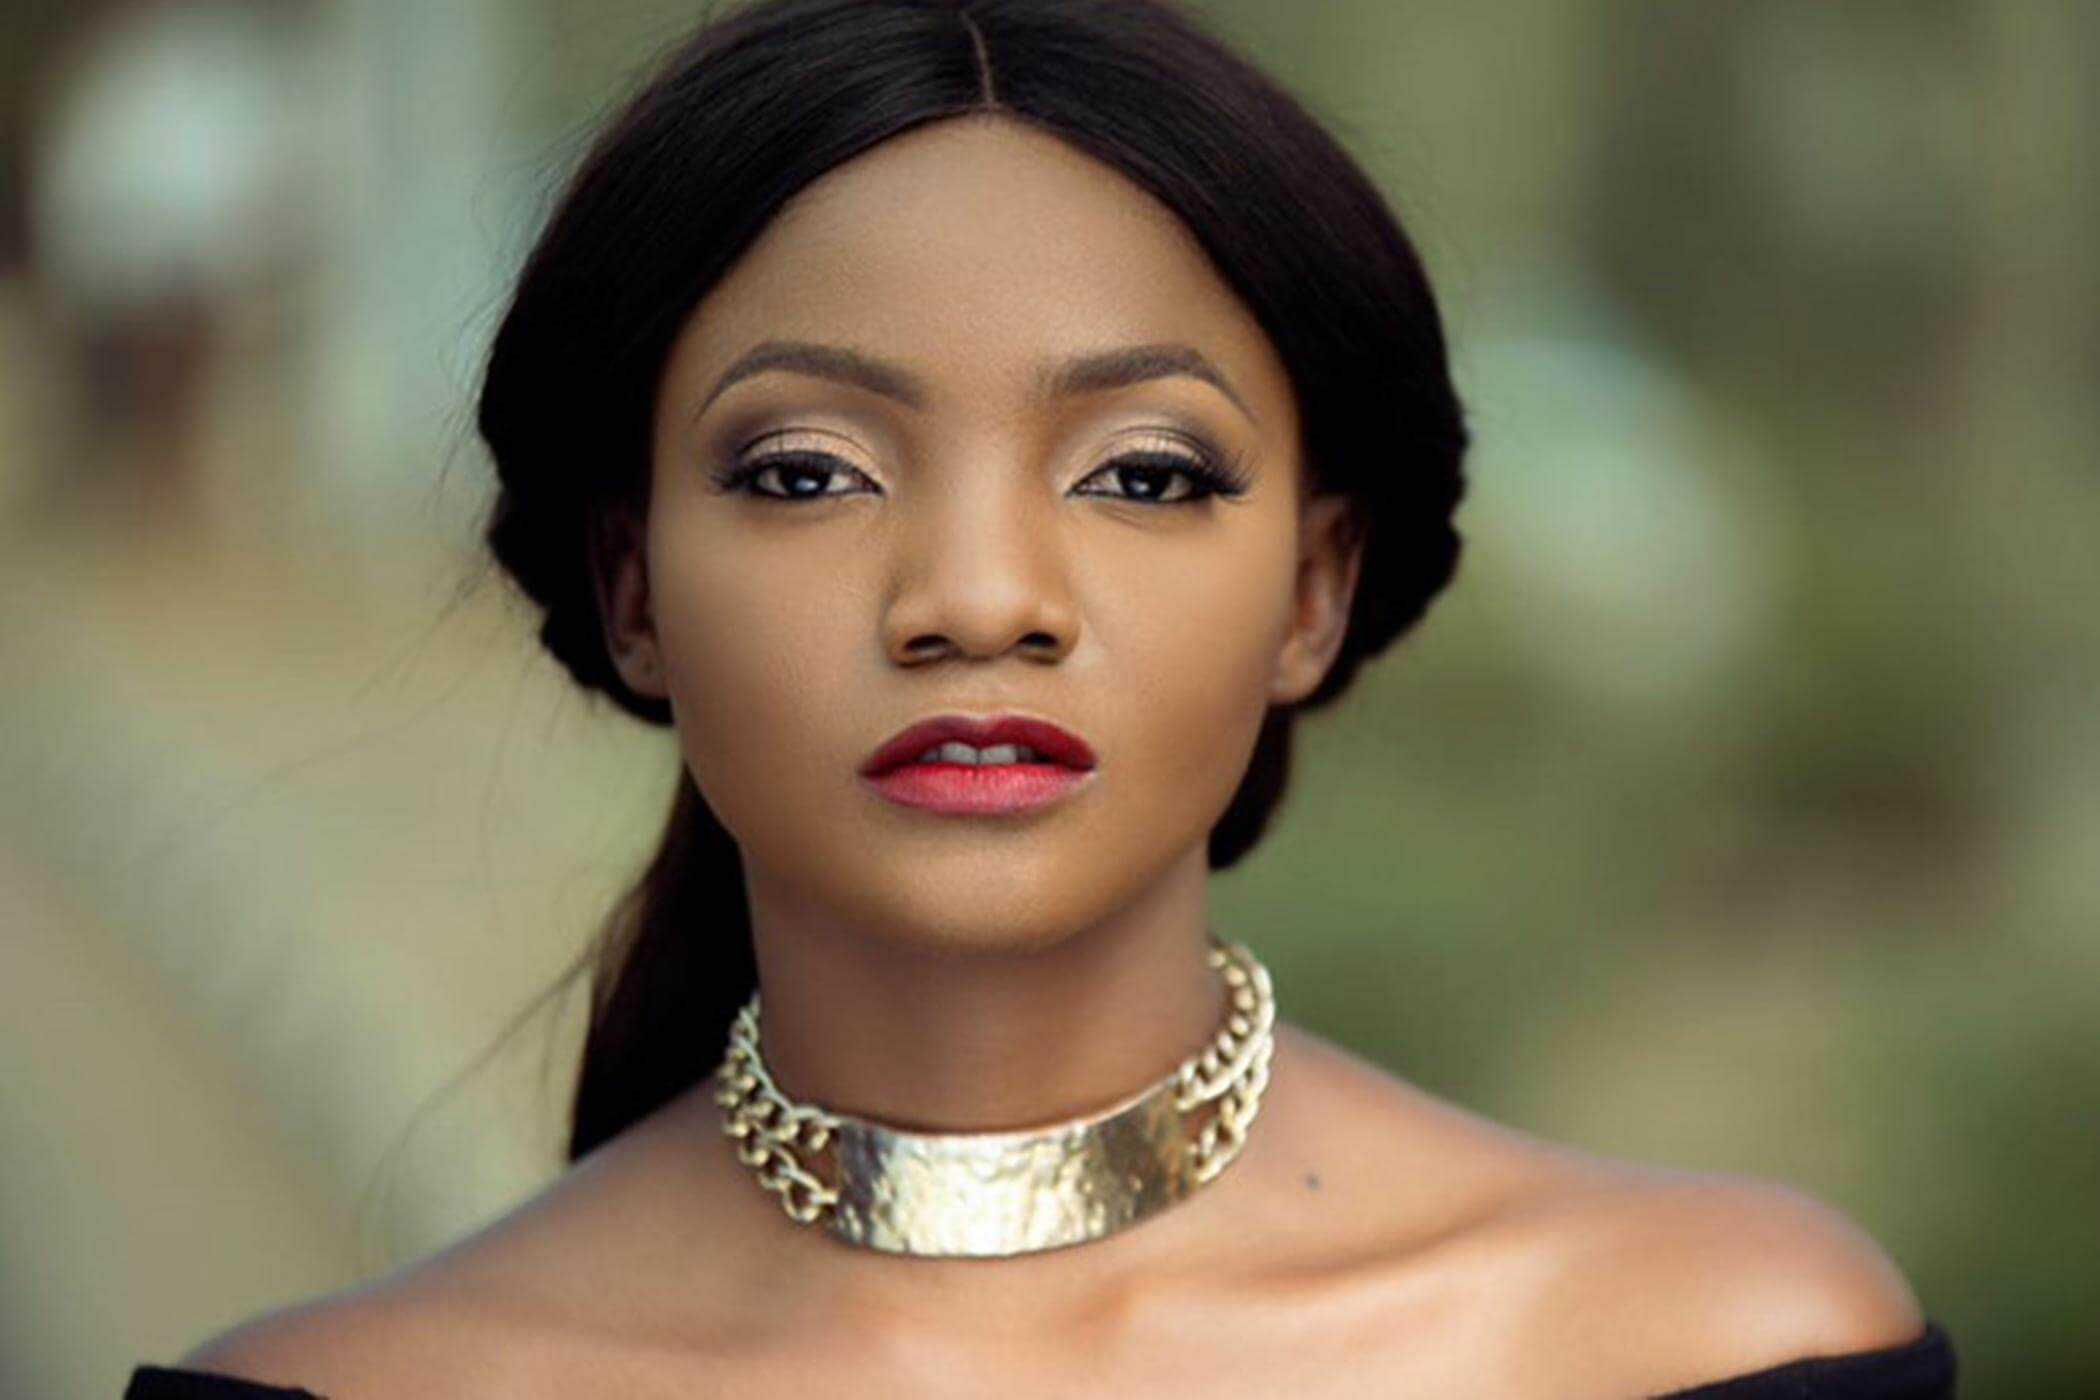 Why you might be cynical about Simi's apology to the LGBTQ+ community